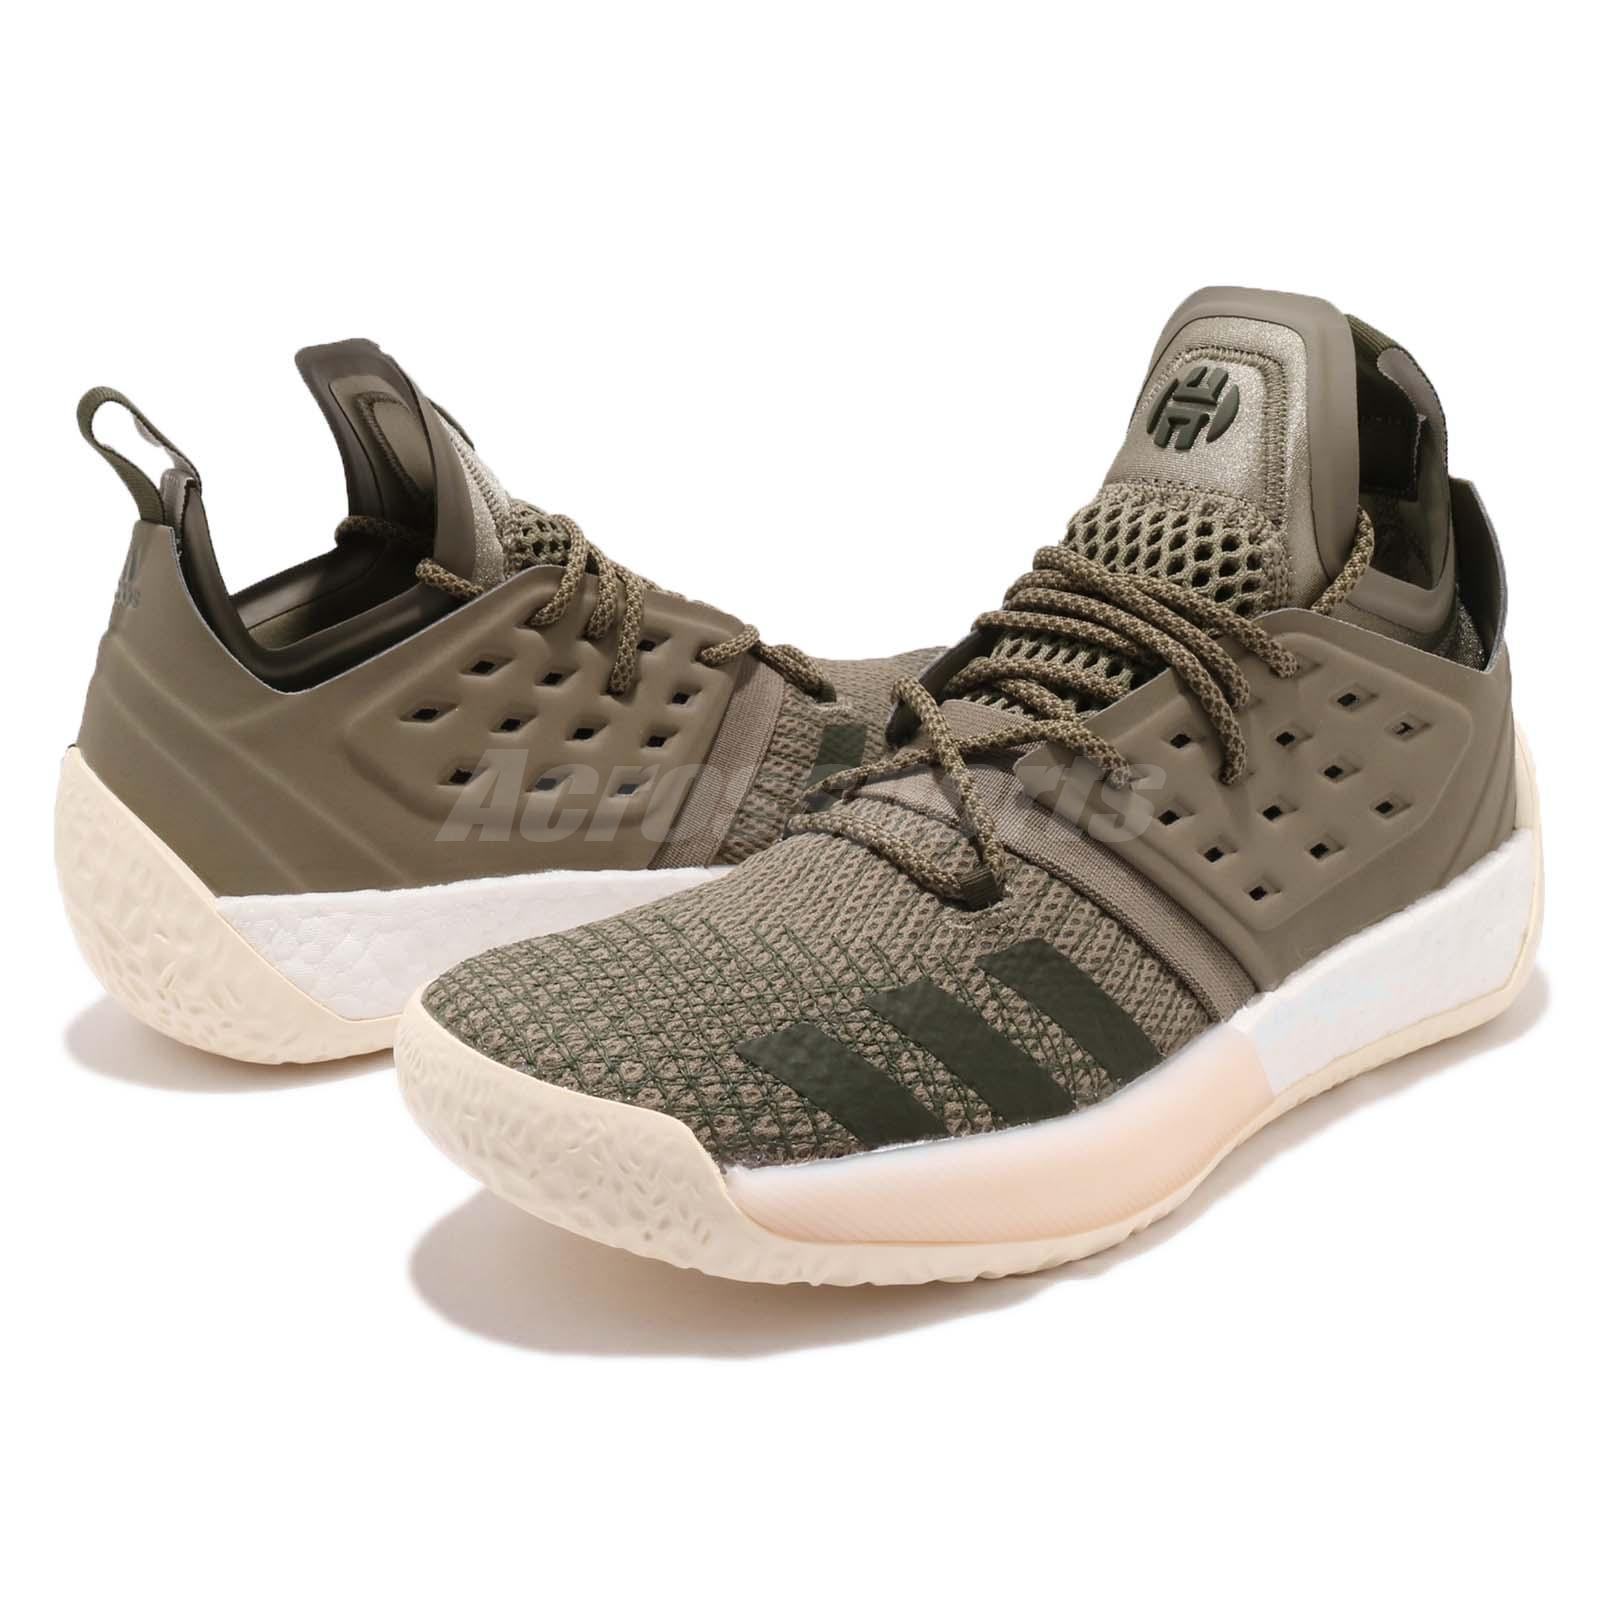 87beb73aaab Details about adidas Harden Vol. 2 James Boost Night Cargo Green Men  Basketball Shoes AQ0027